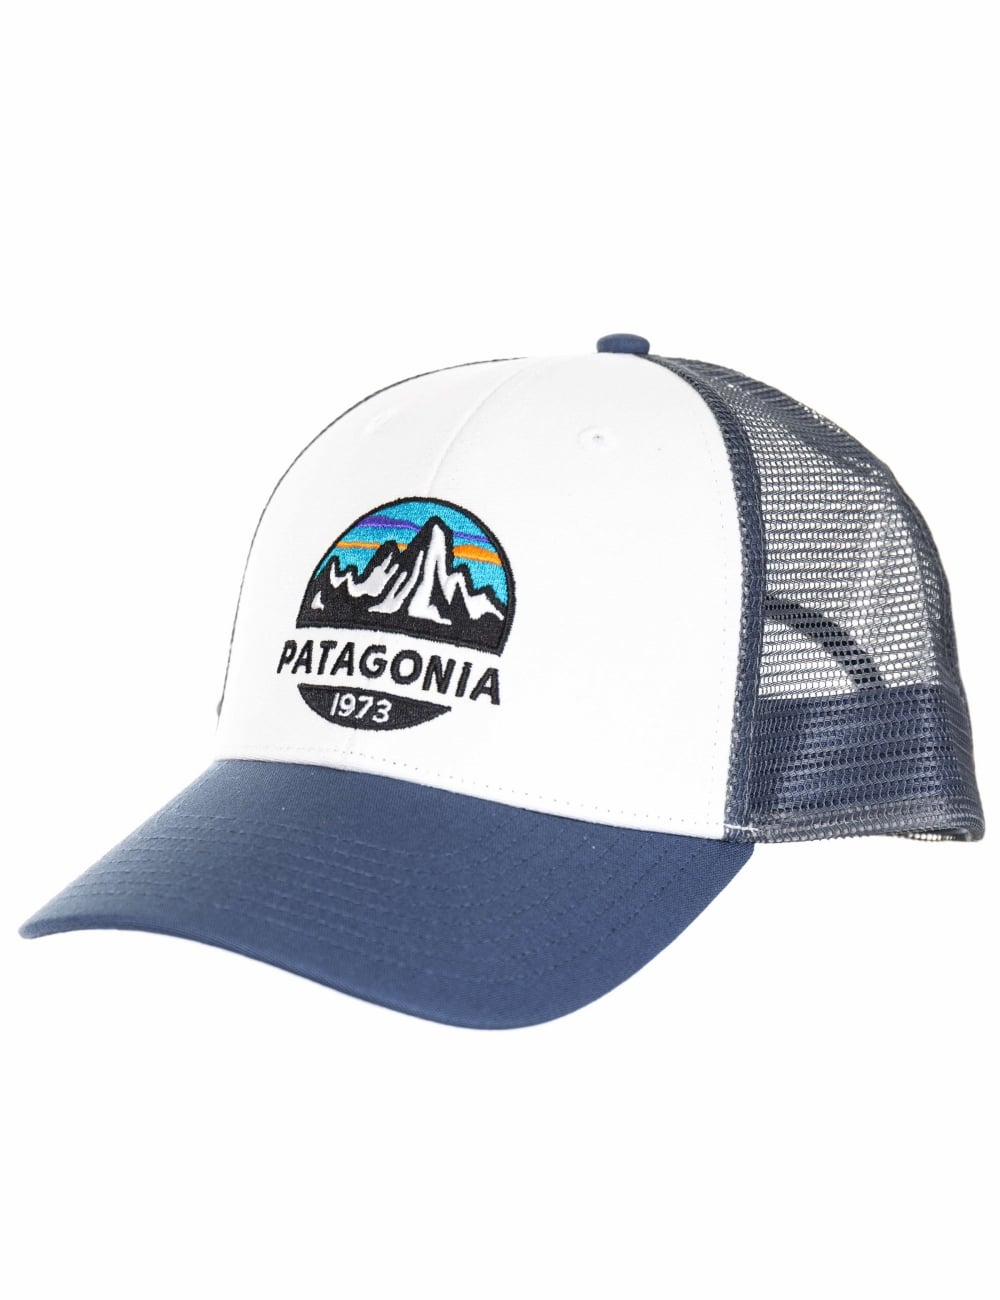 690414d2 Patagonia Fitz Roy Scope LoPro Trucker Hat - White - Accessories ...